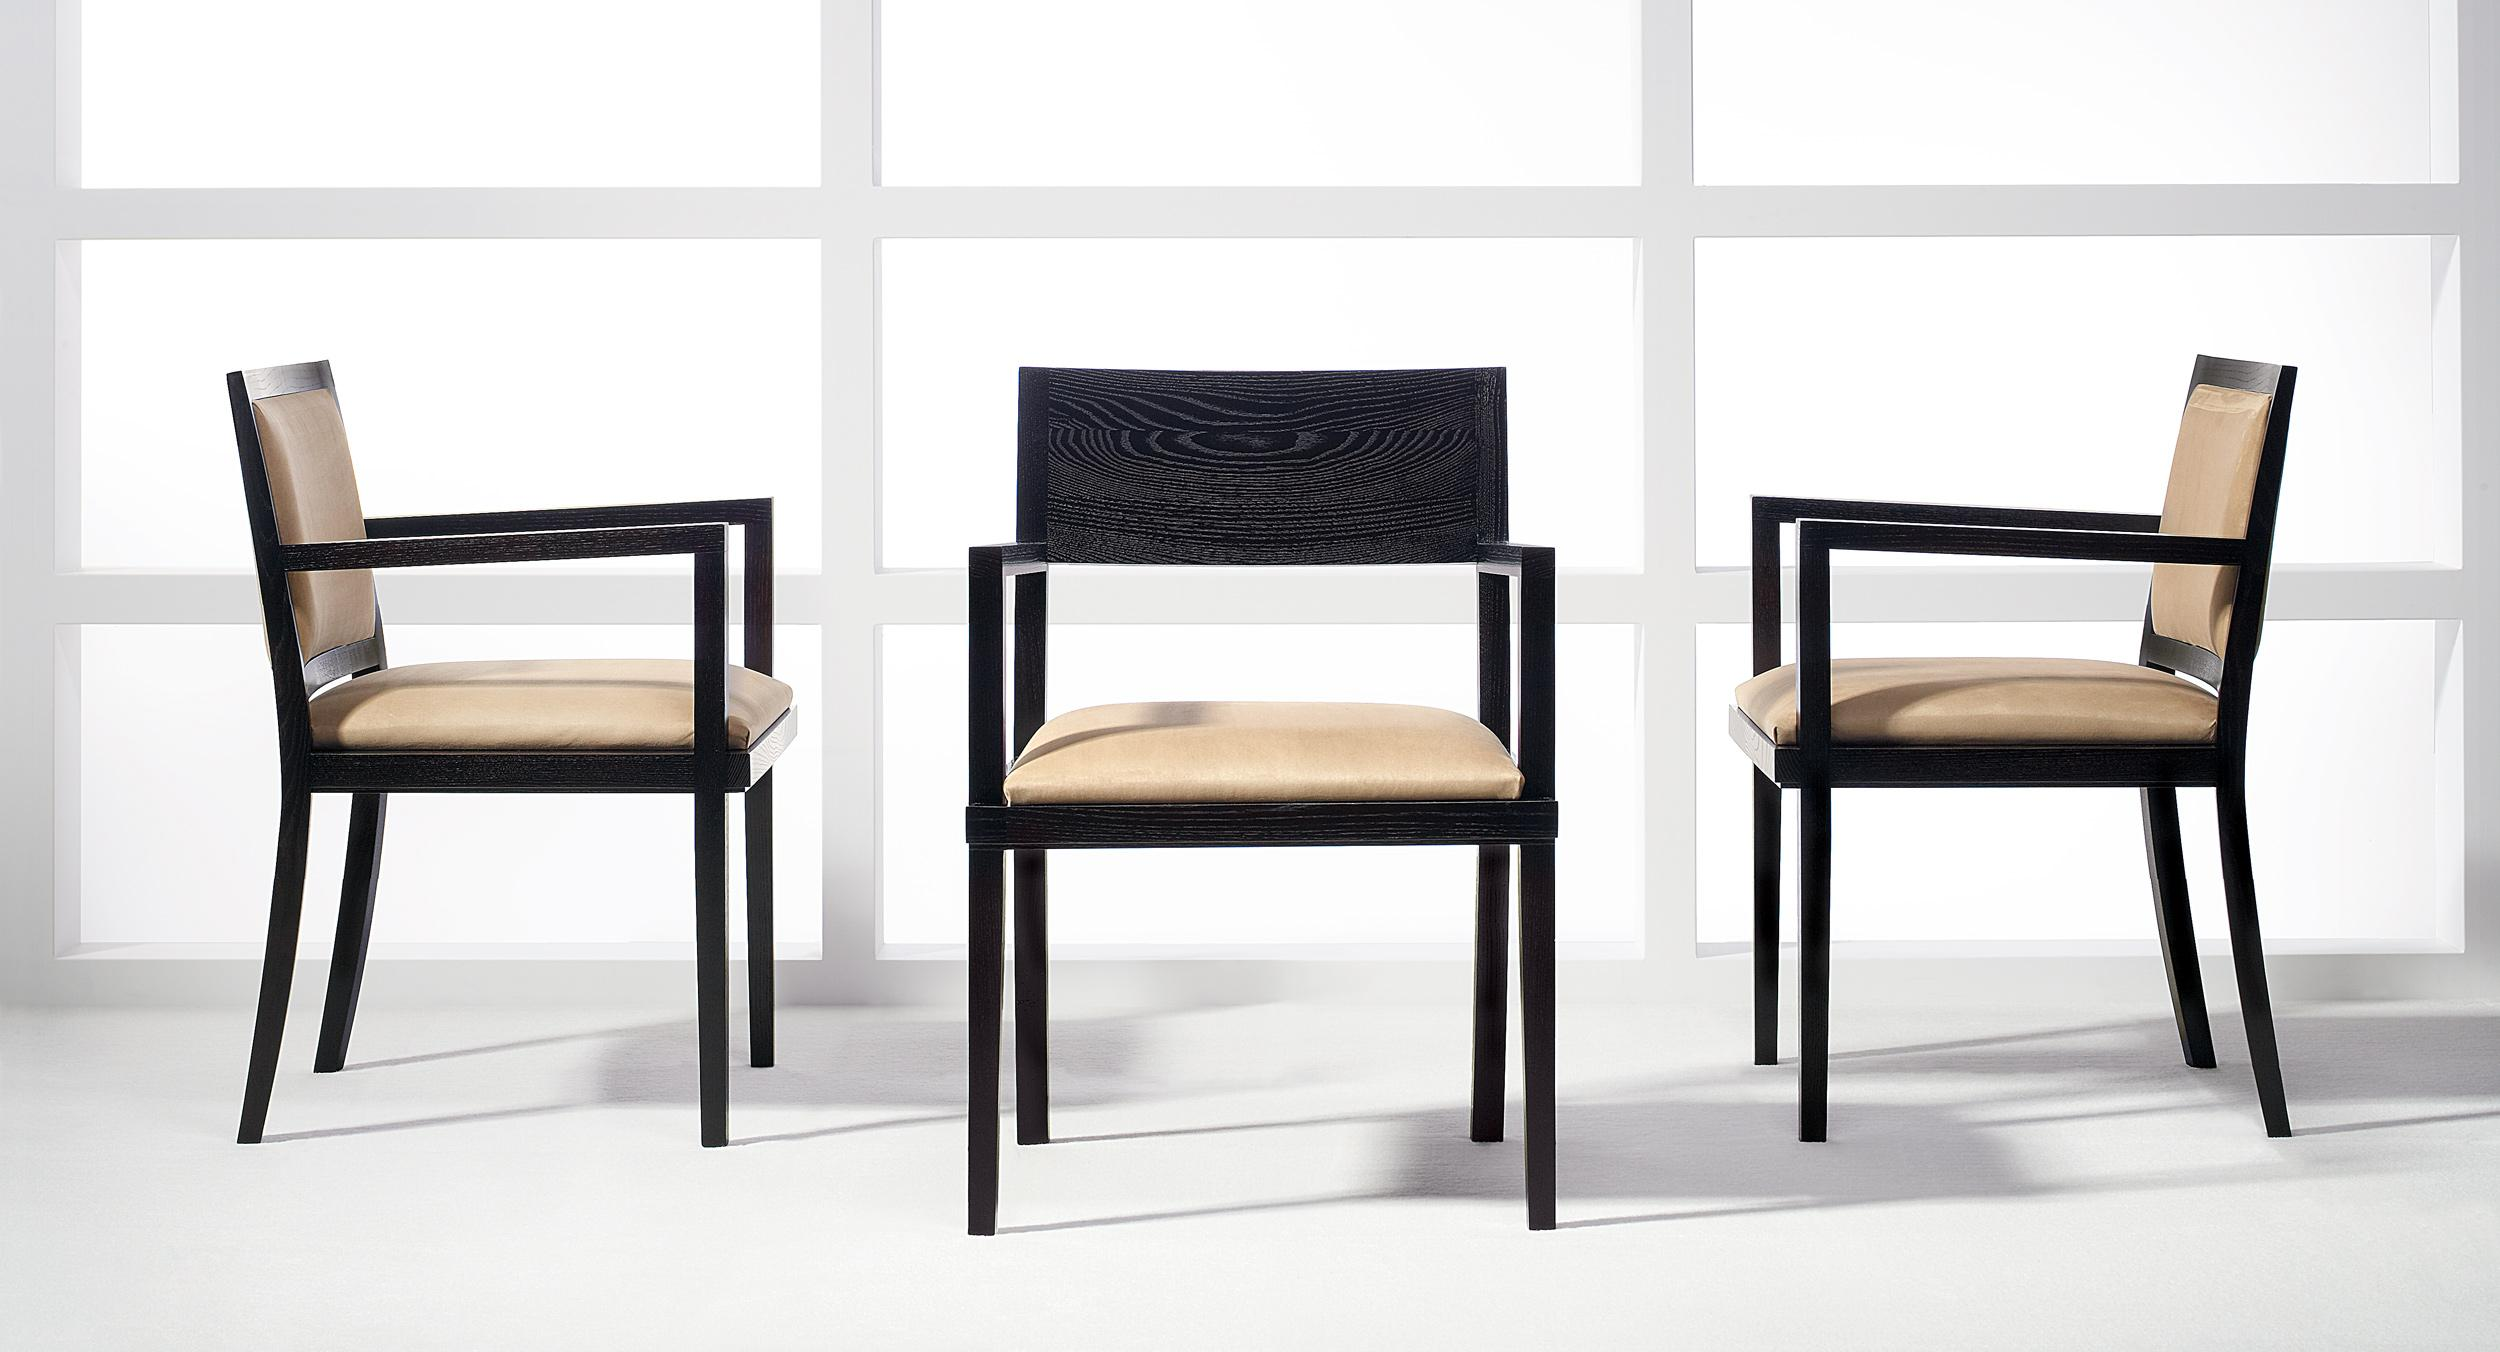 Mitre guest seating is available with a fabric back or partial height solid horizontal wood back.